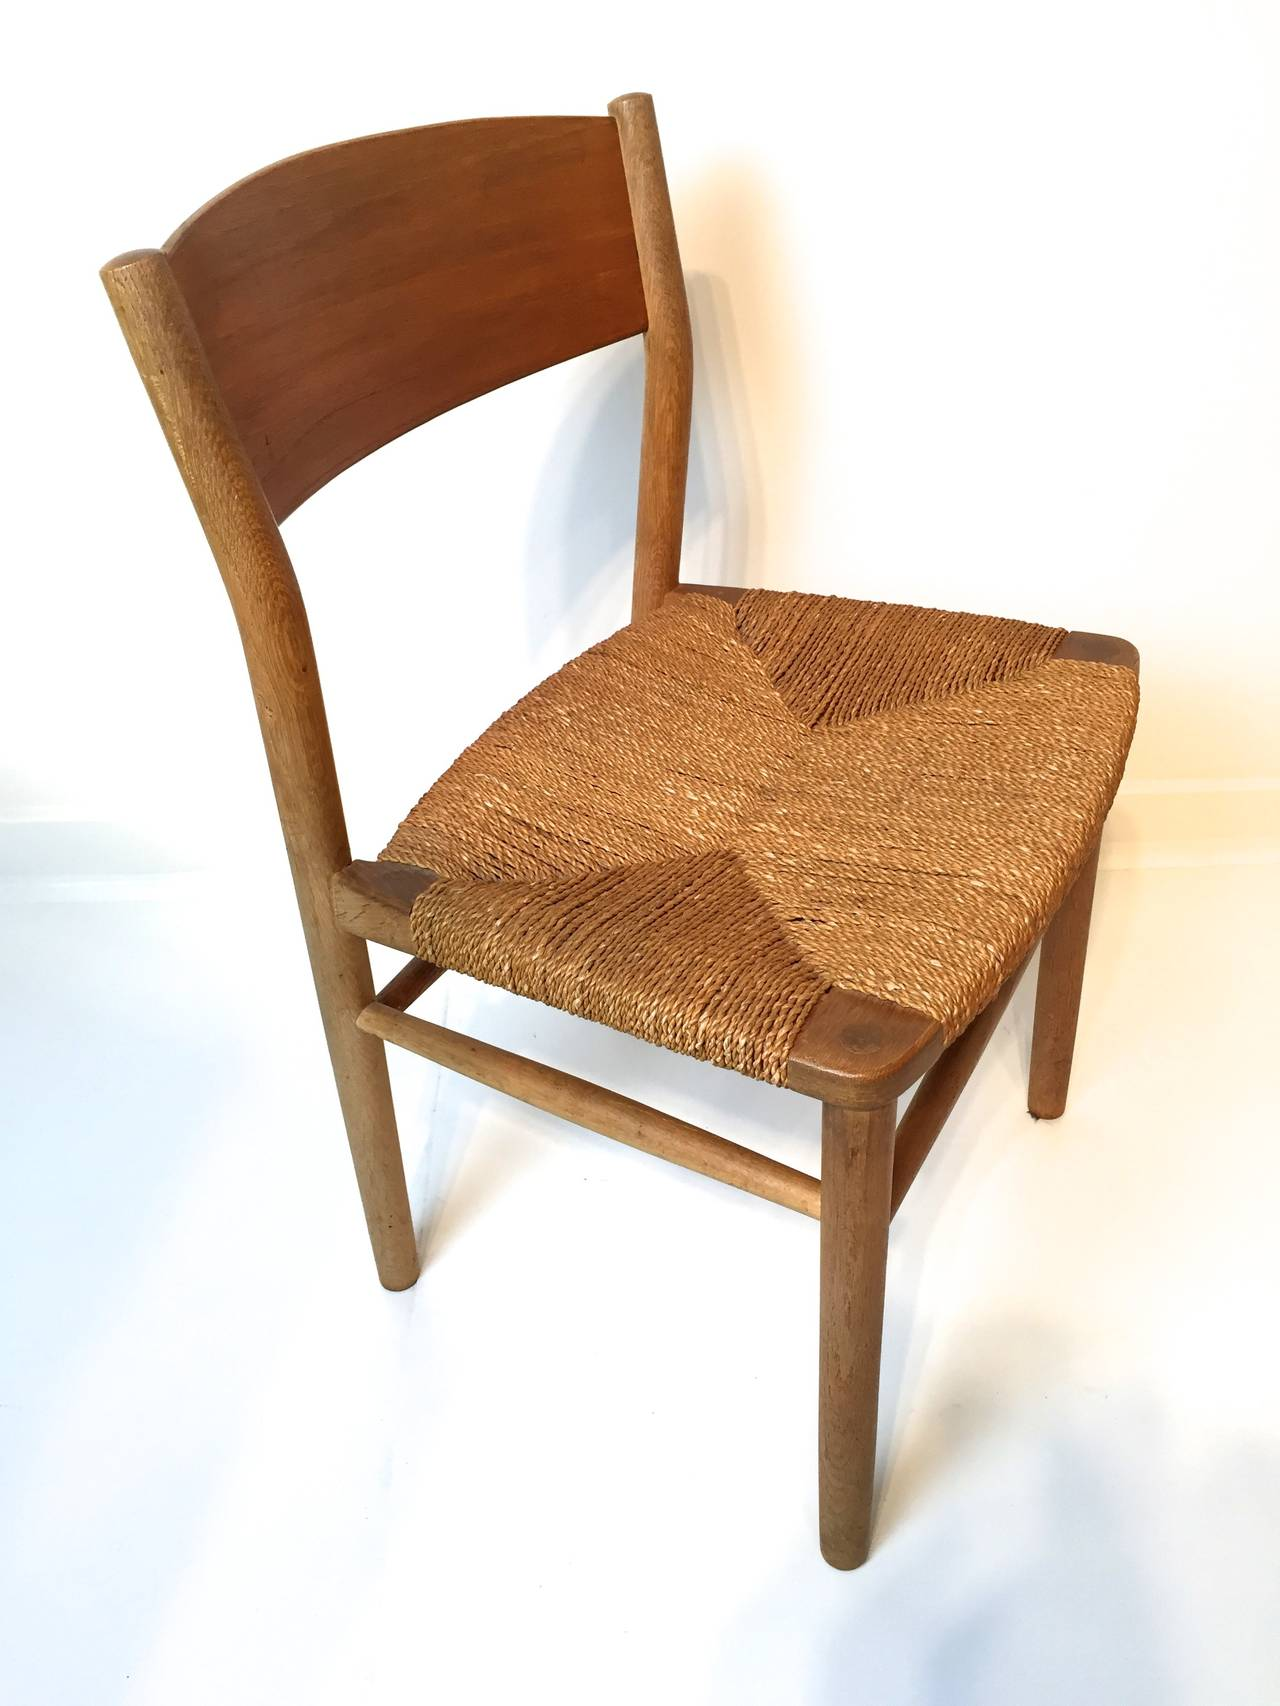 pottery barn seagrass chair ebay ivory covers borge mogensen dining at 1stdibs